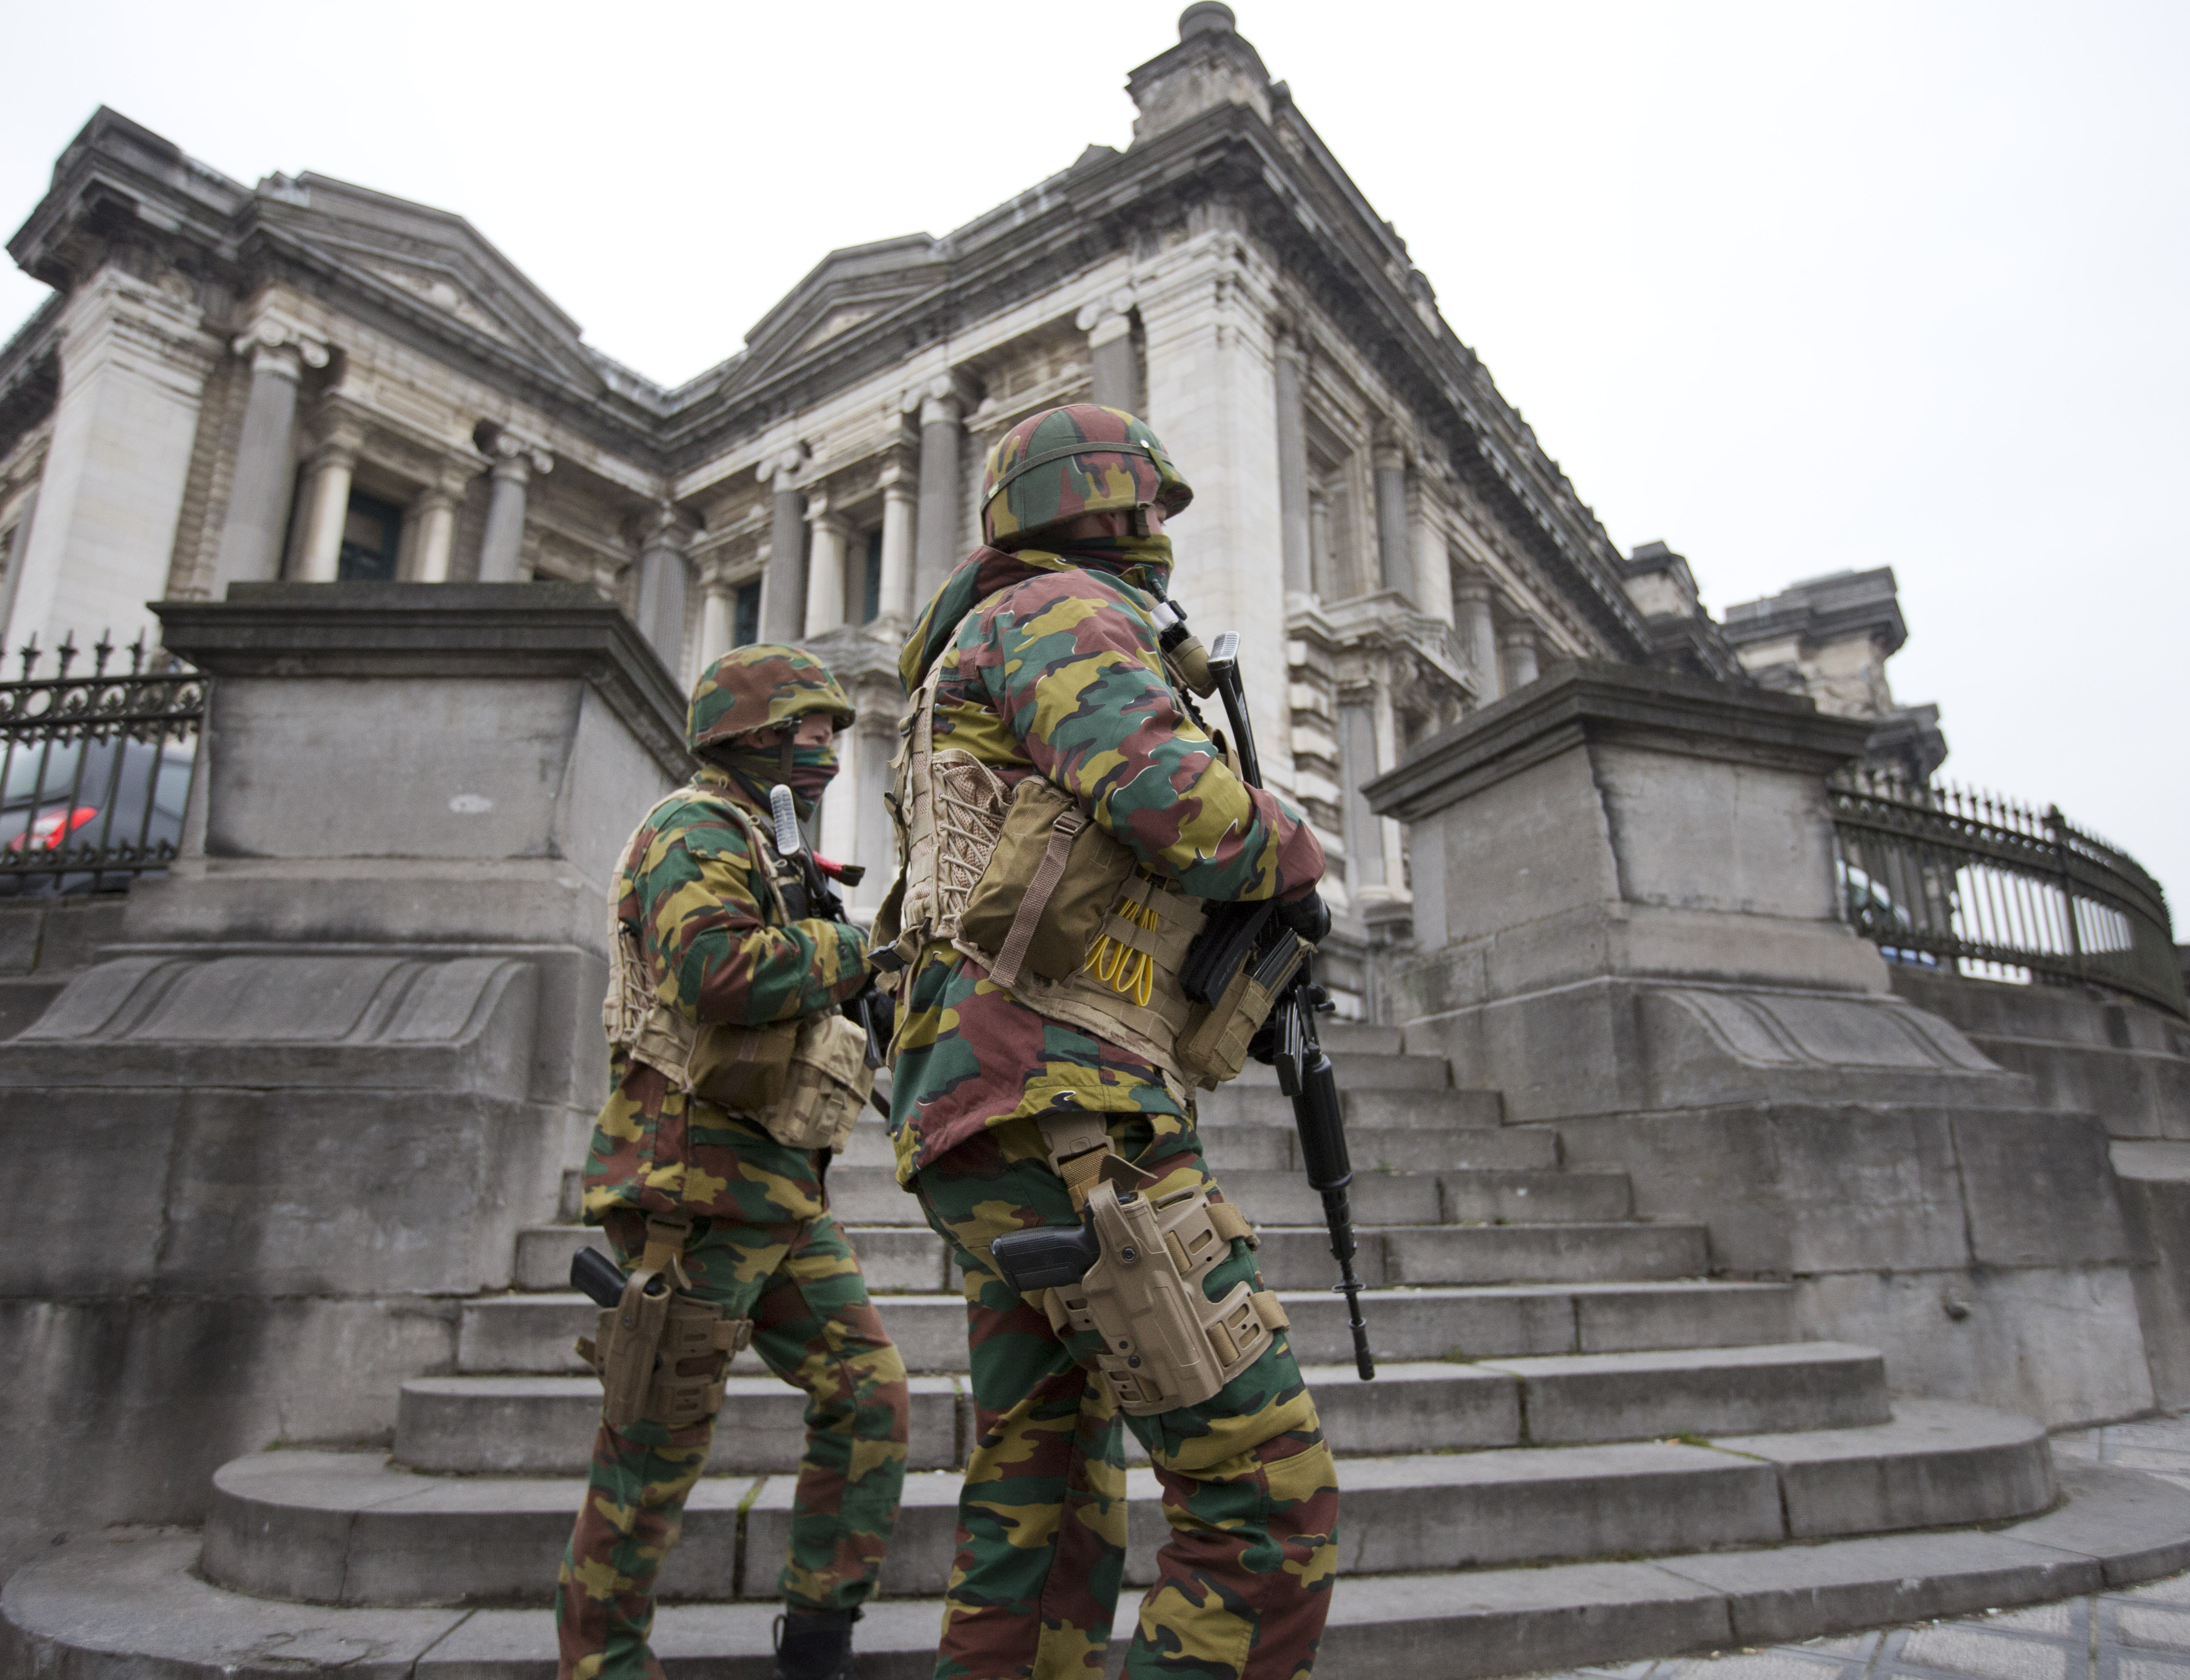 Brussels Terrorists Had Possibily Planned an Attack on Nuclear Power Plant